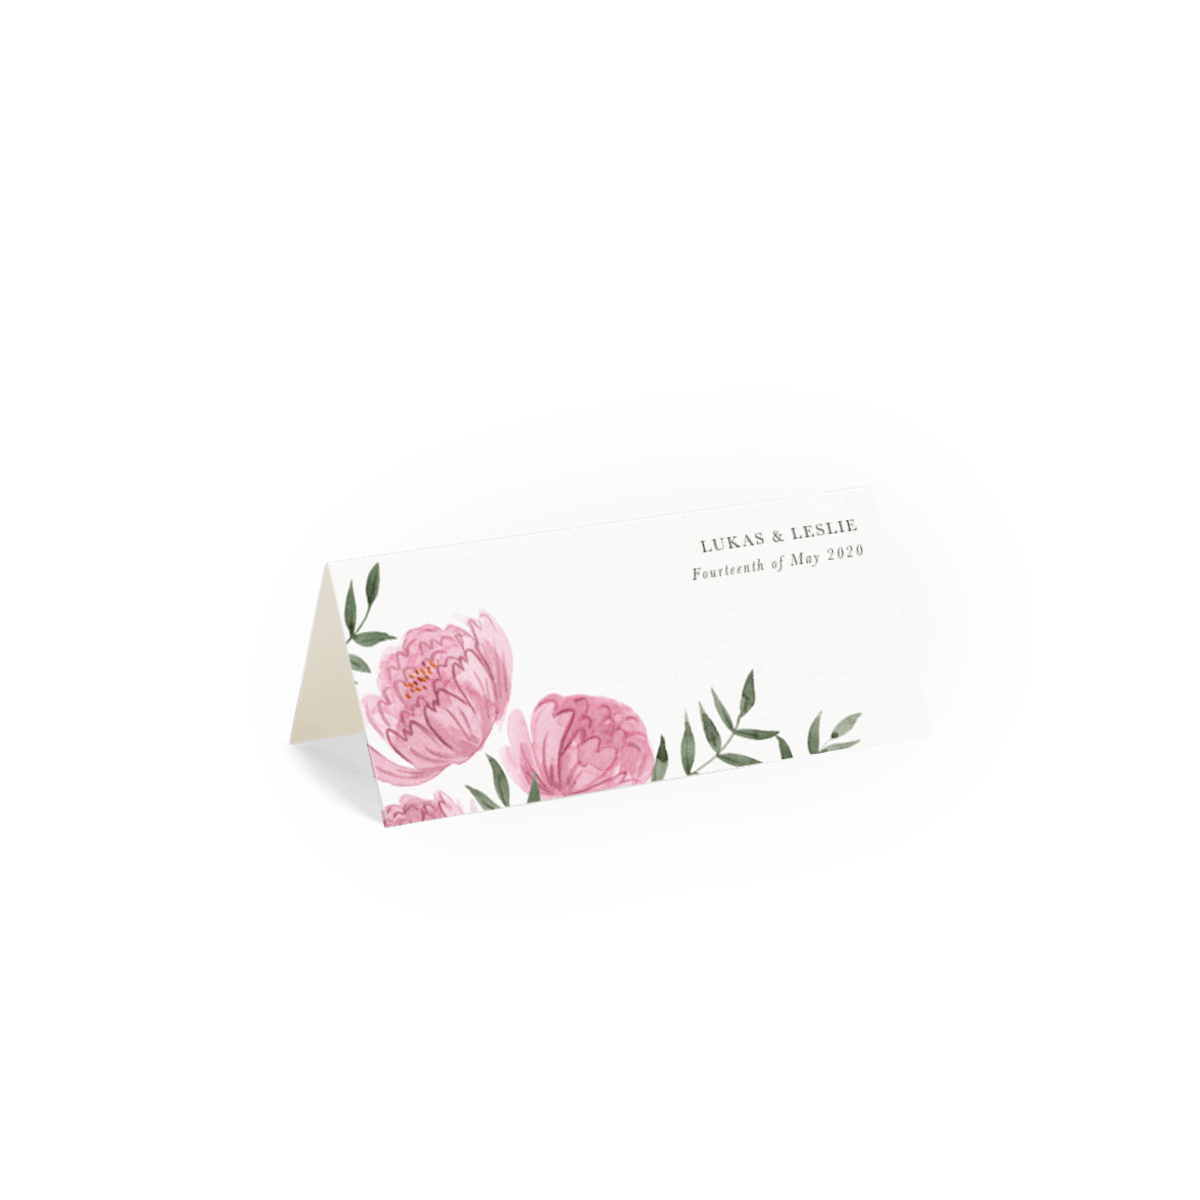 Https%3a%2f%2fwww.papier.com%2fproduct image%2f69728%2f15%2fdusky peonies 16485 back 1555275453.png?ixlib=rb 1.1